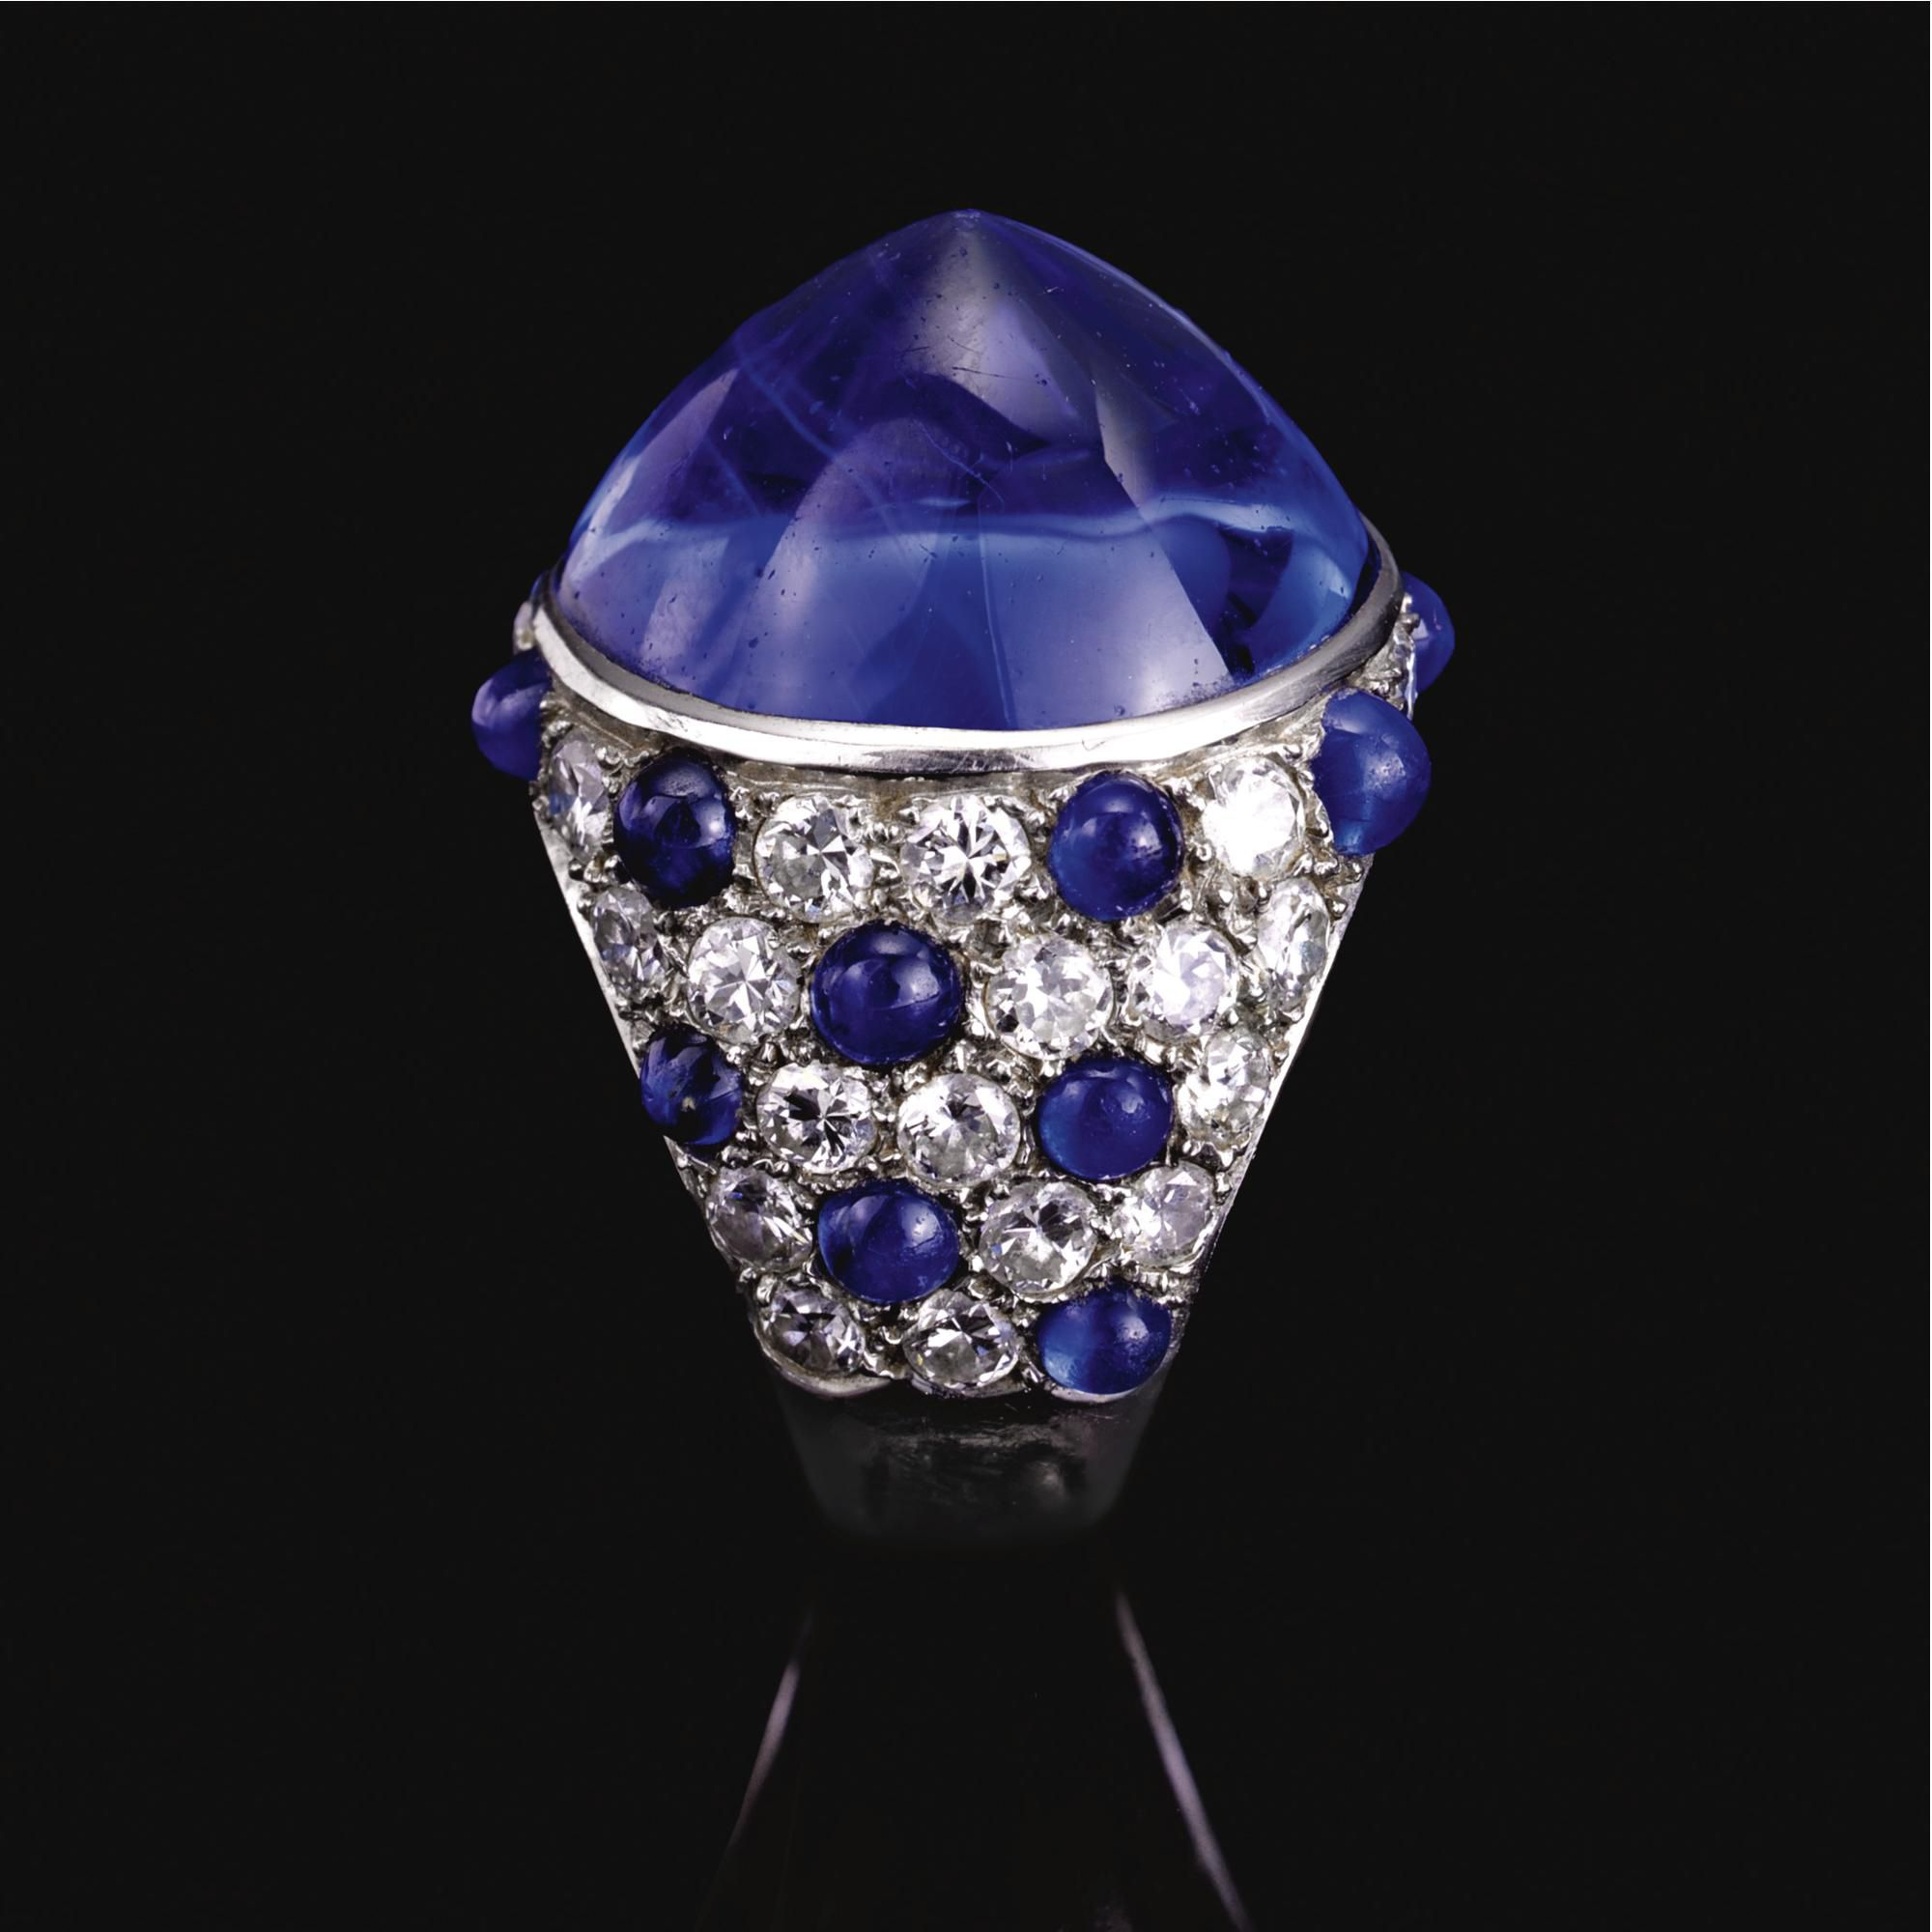 sapphire ring weldon img ellipse cartier matthew product